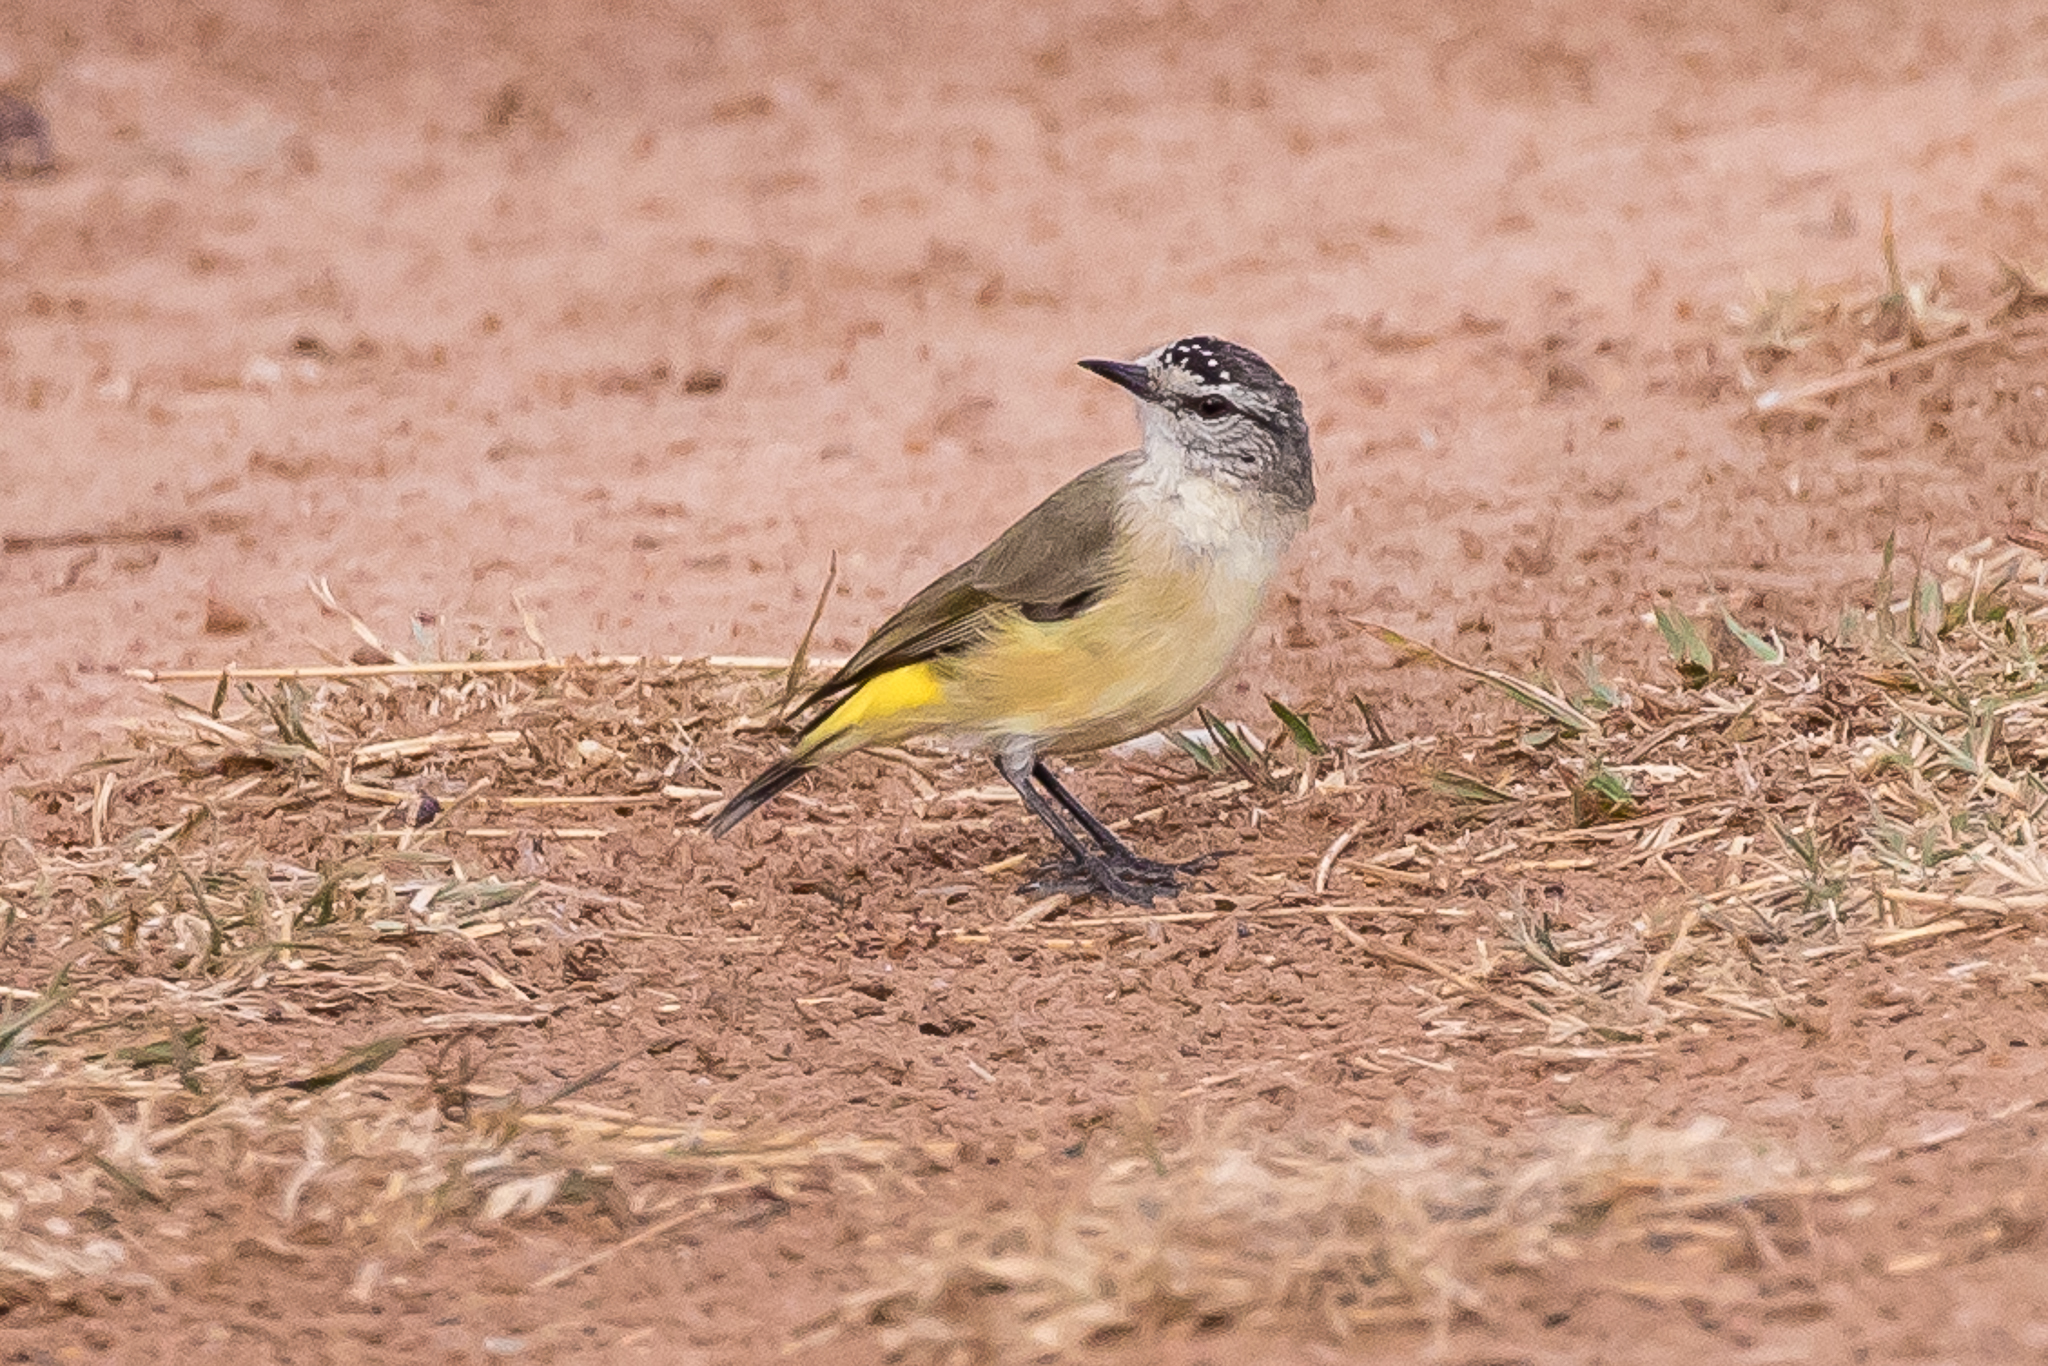 Yellow-rumped Thornbills are ground feeders and prefer open habitats as long as there are low branches or a fence nearby to provide a safe perch. They feed on insects and sometimes seeds.Common in the farmlands around Grenfell.